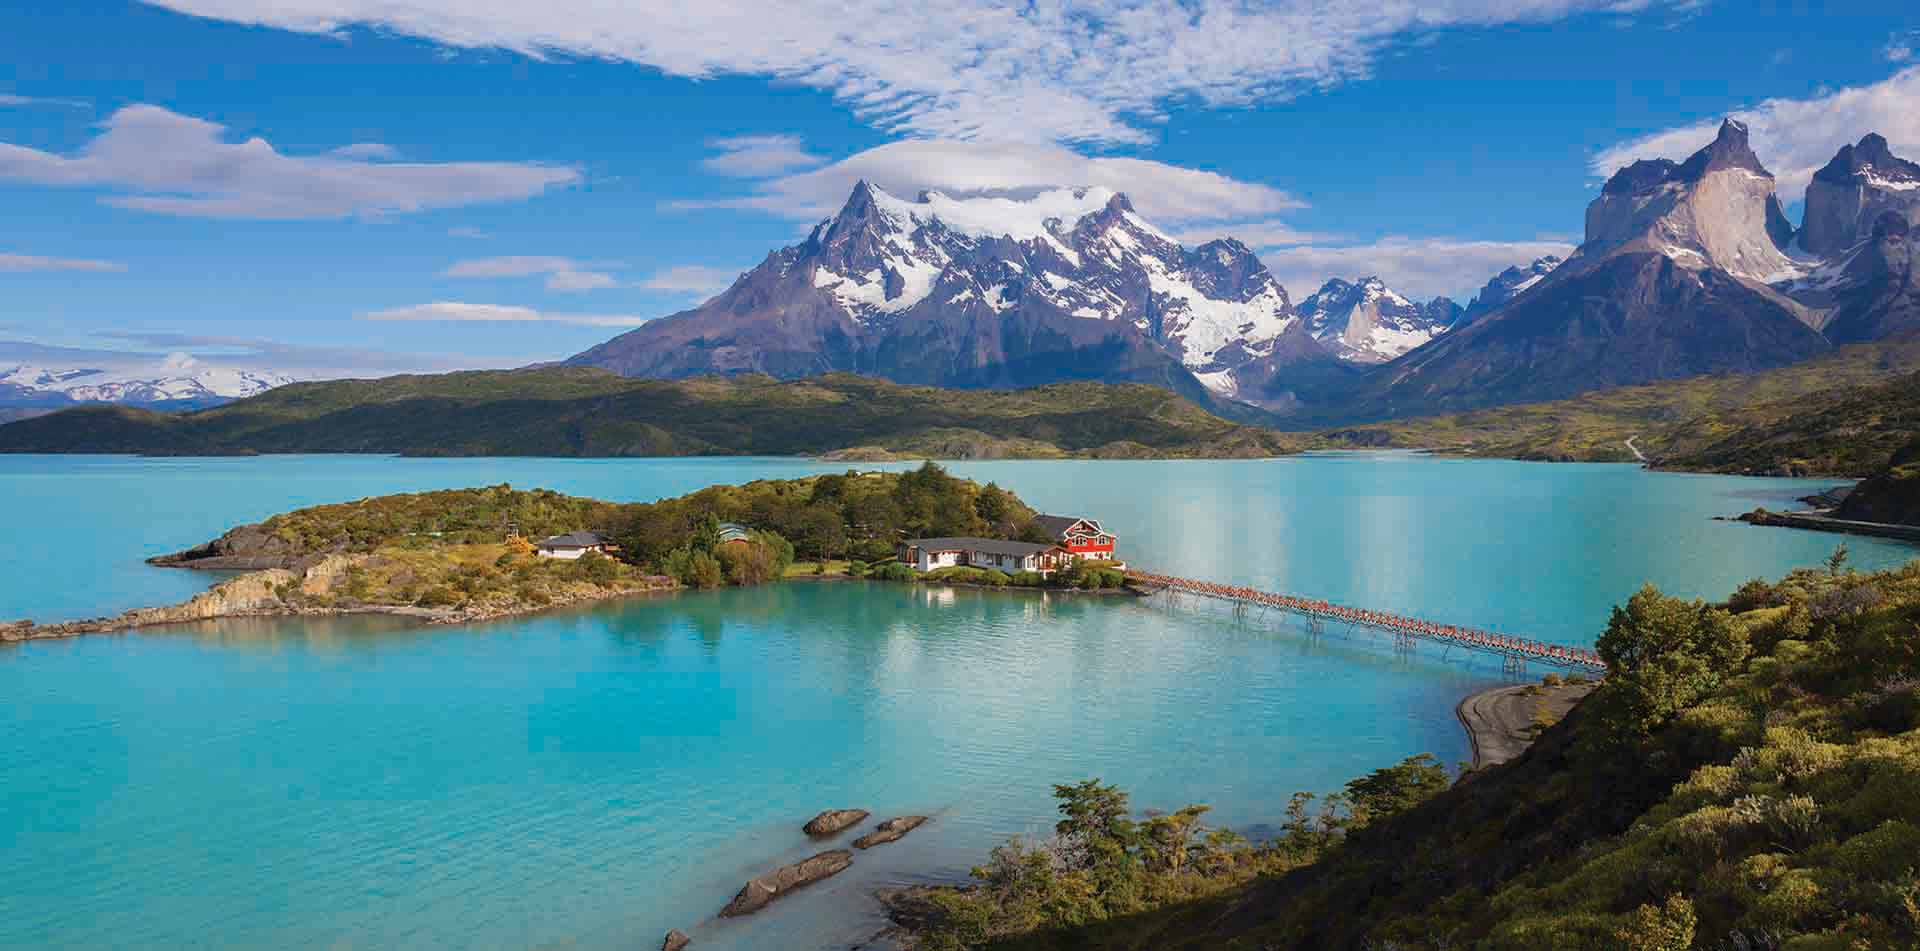 Lake and Mountains, Chile